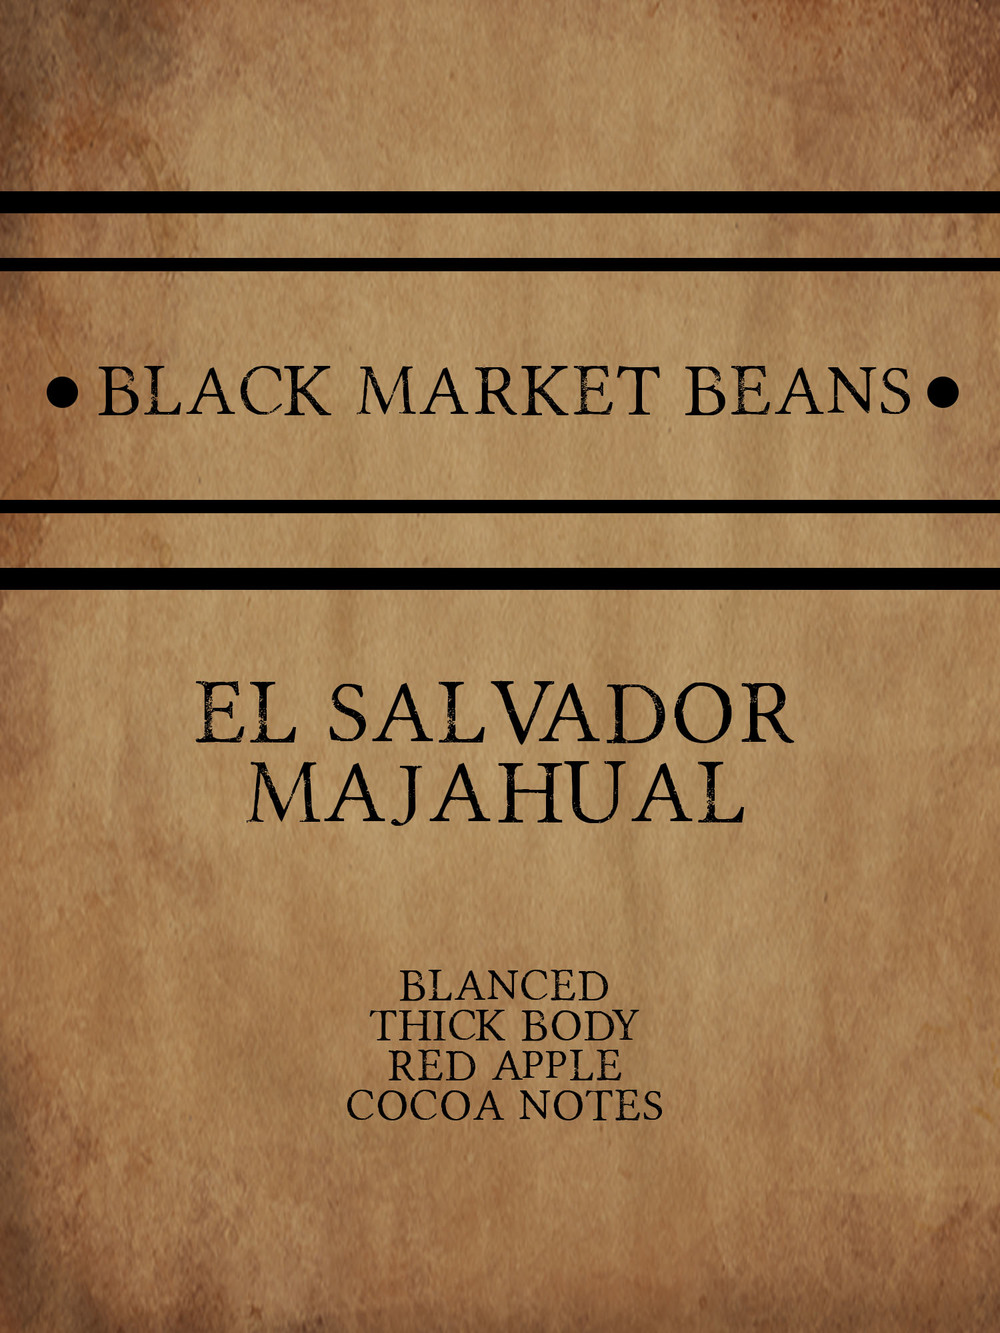 coffee_card_El_Salvador_Majahual.jpg